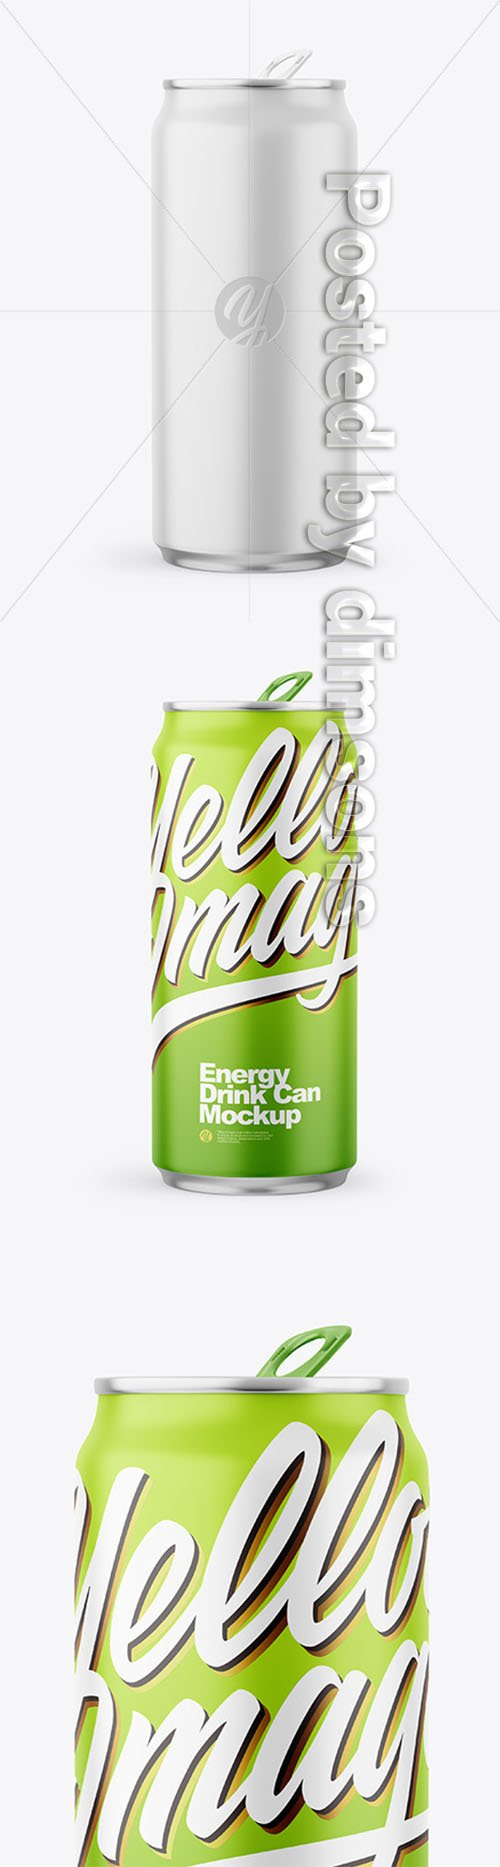 Metallic Drink Can With Matte Finish Mockup 66558 TIF